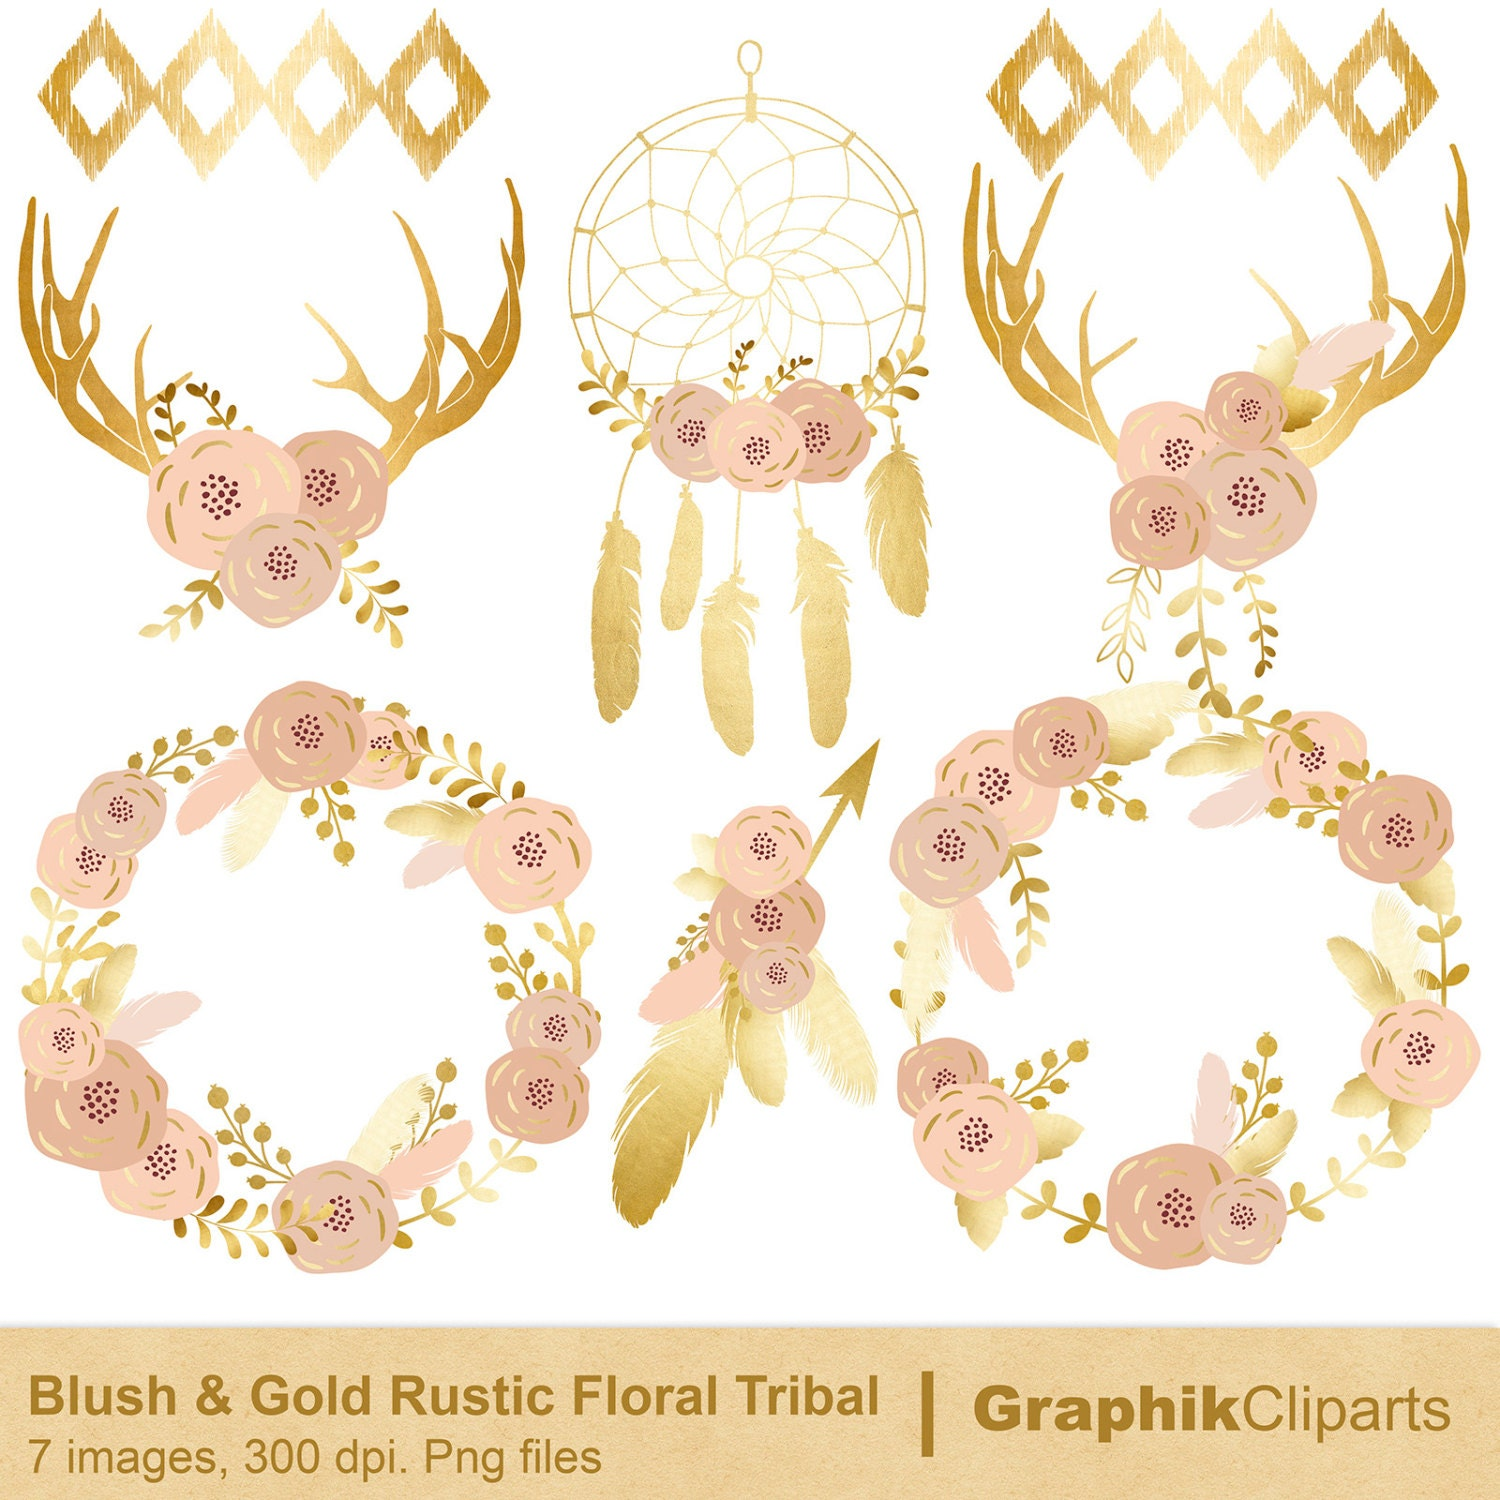 Blush and Gold Rustic Floral Tribal. Tribal Clip Art. Rustic